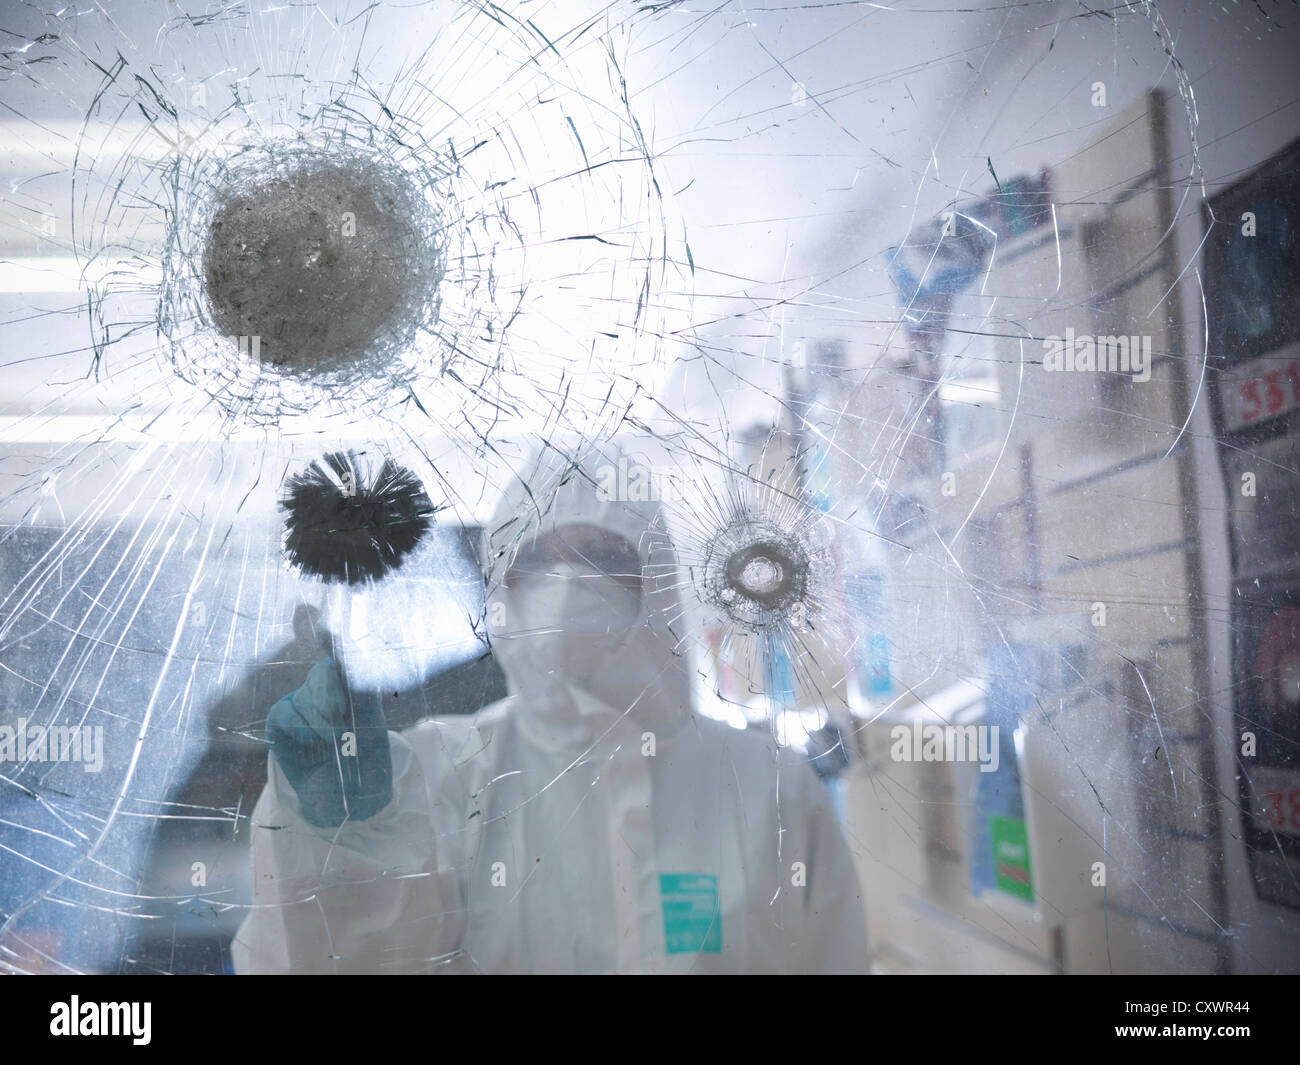 Forensic scientist at shattered window - Stock Image